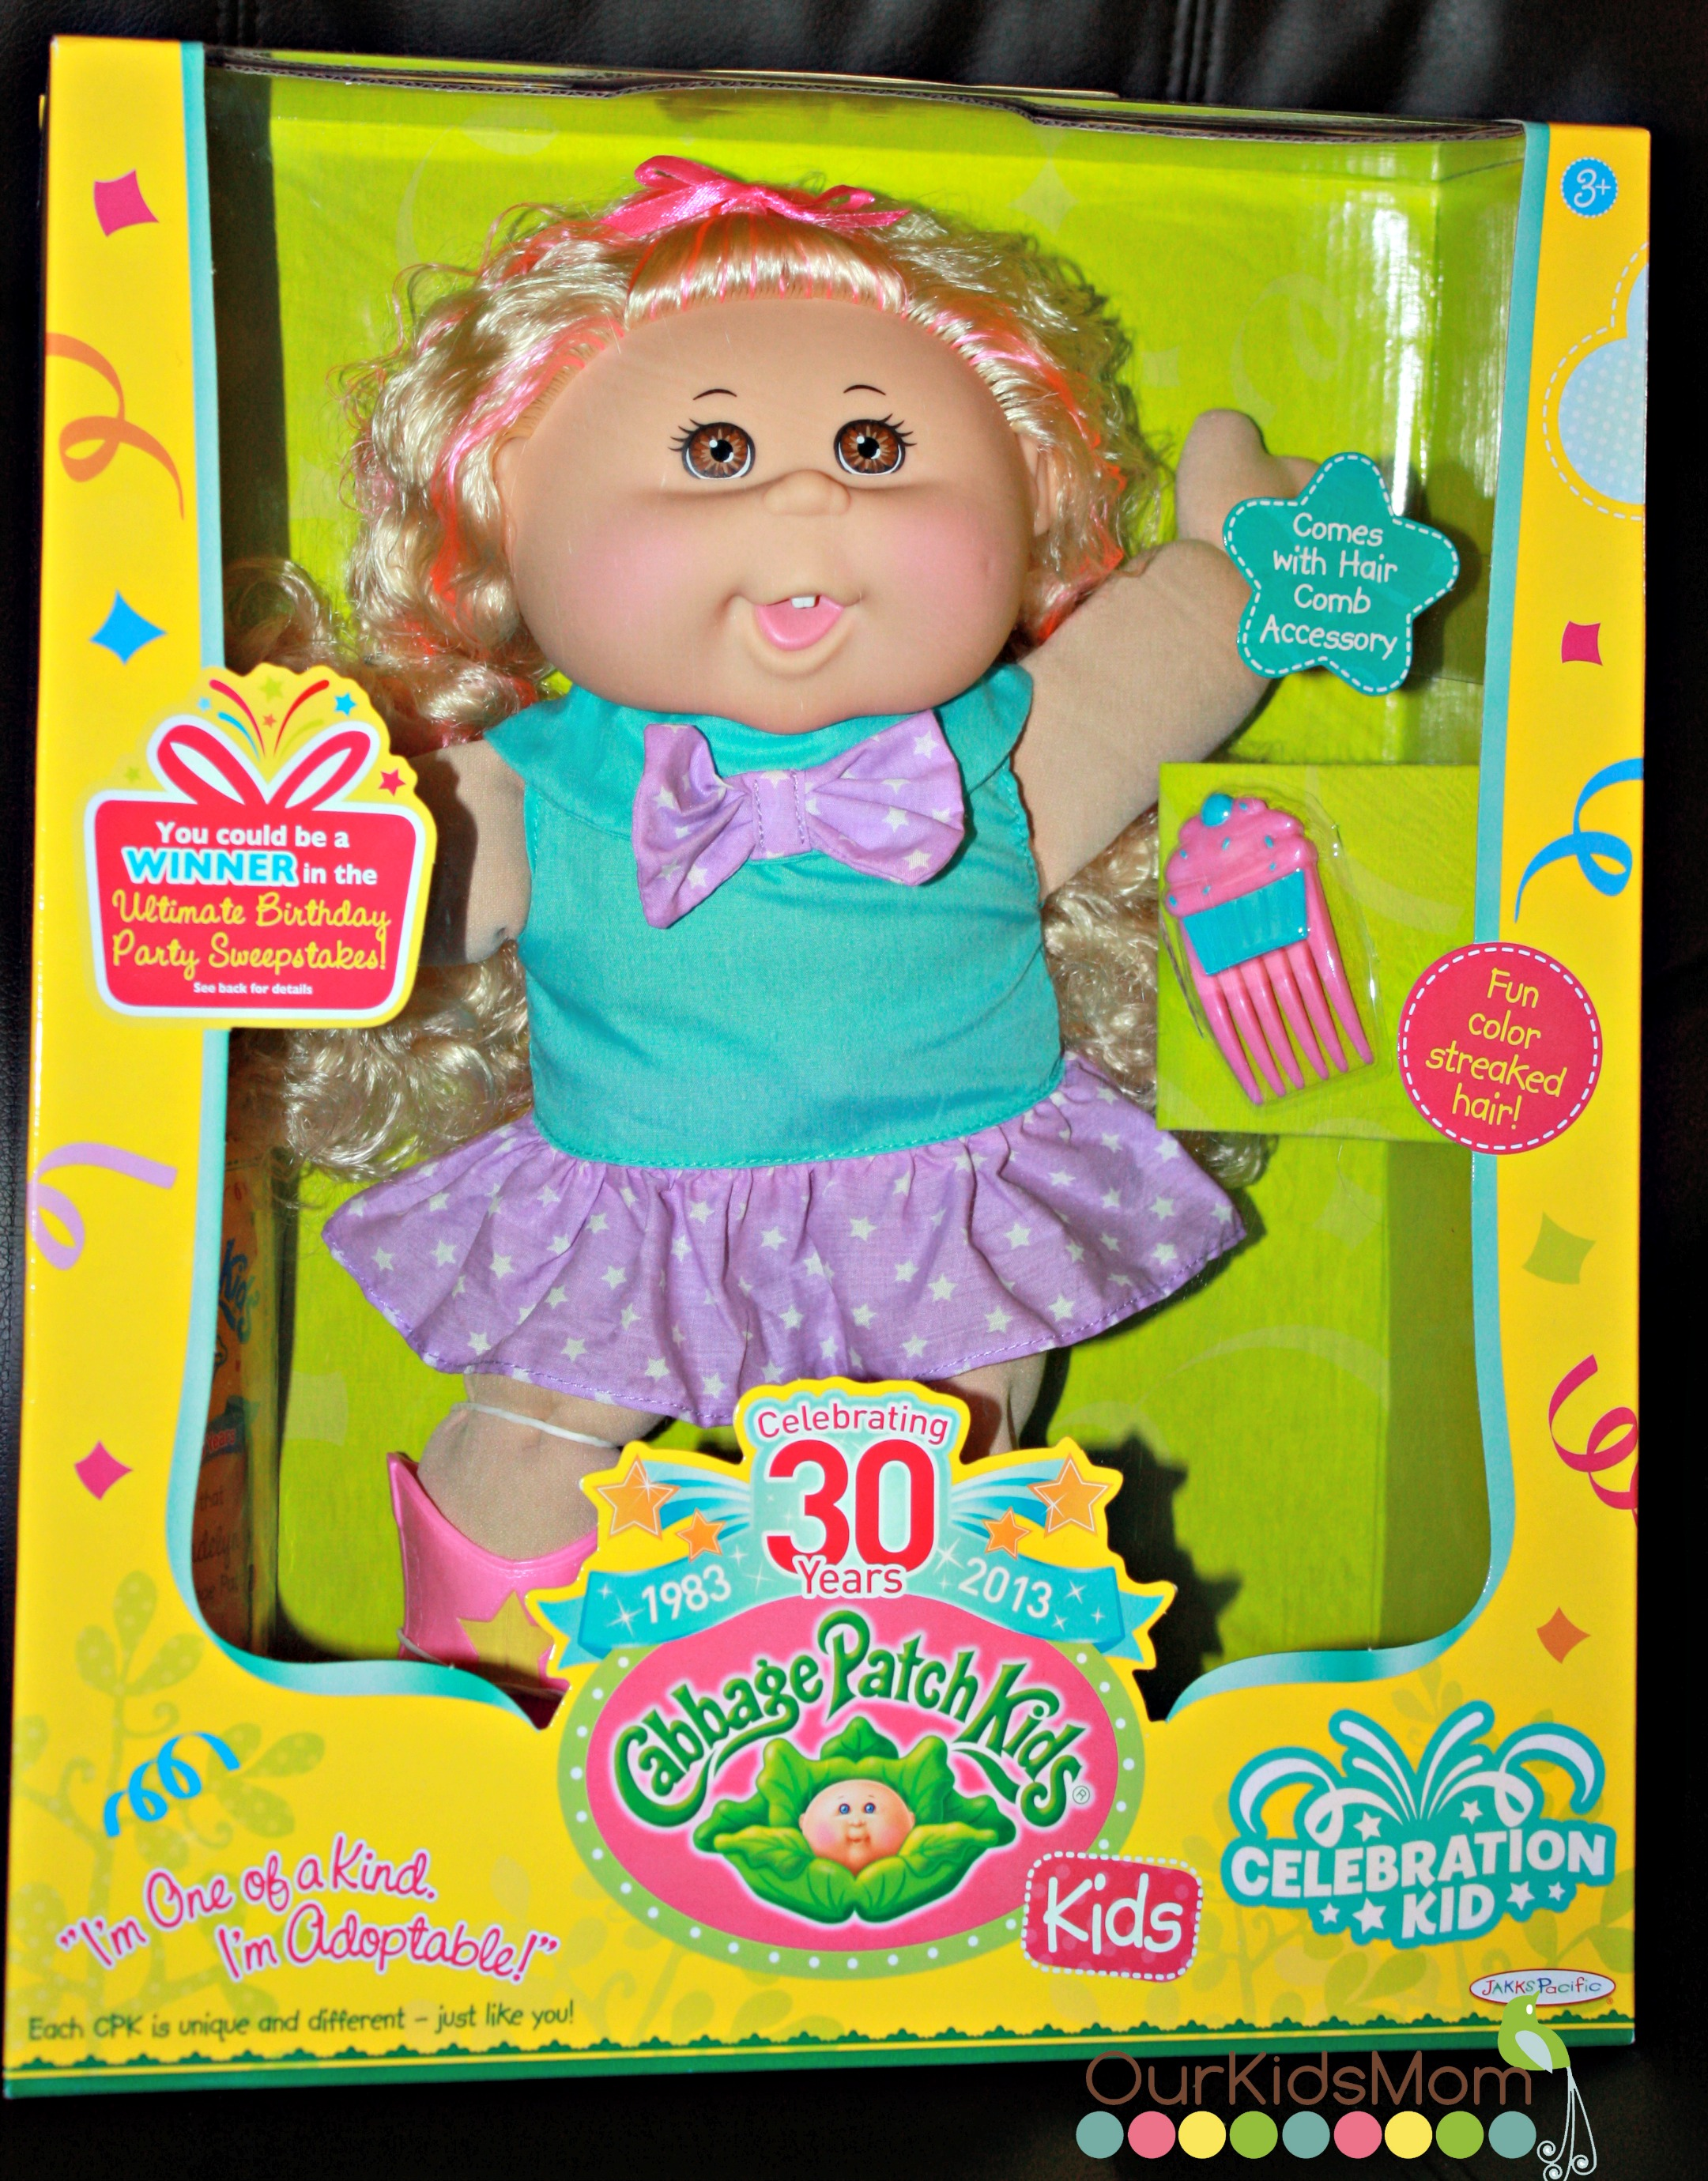 Cabbage patch kids i cant believe cabbage patch kids have been around for 30 years now happy birthday cabbage patch kids in celebration of their 30 years cabbage patch kids aiddatafo Images